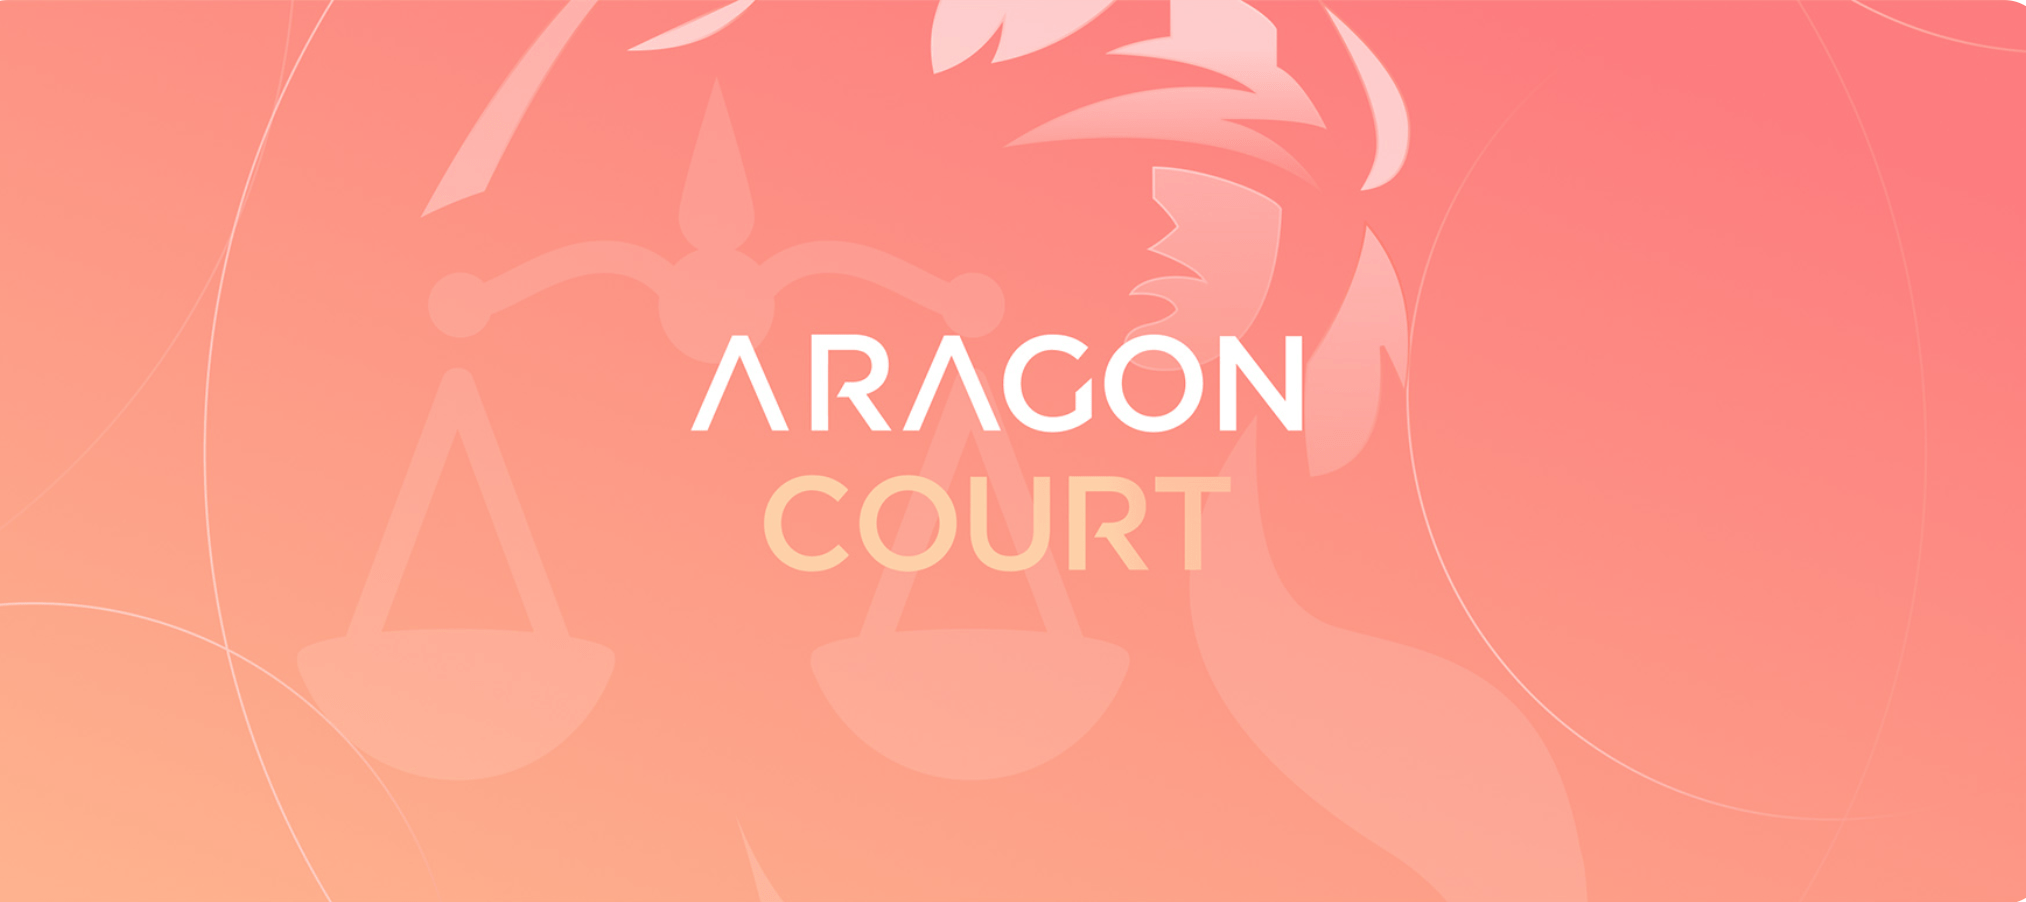 invest in aragon cryptocurrency